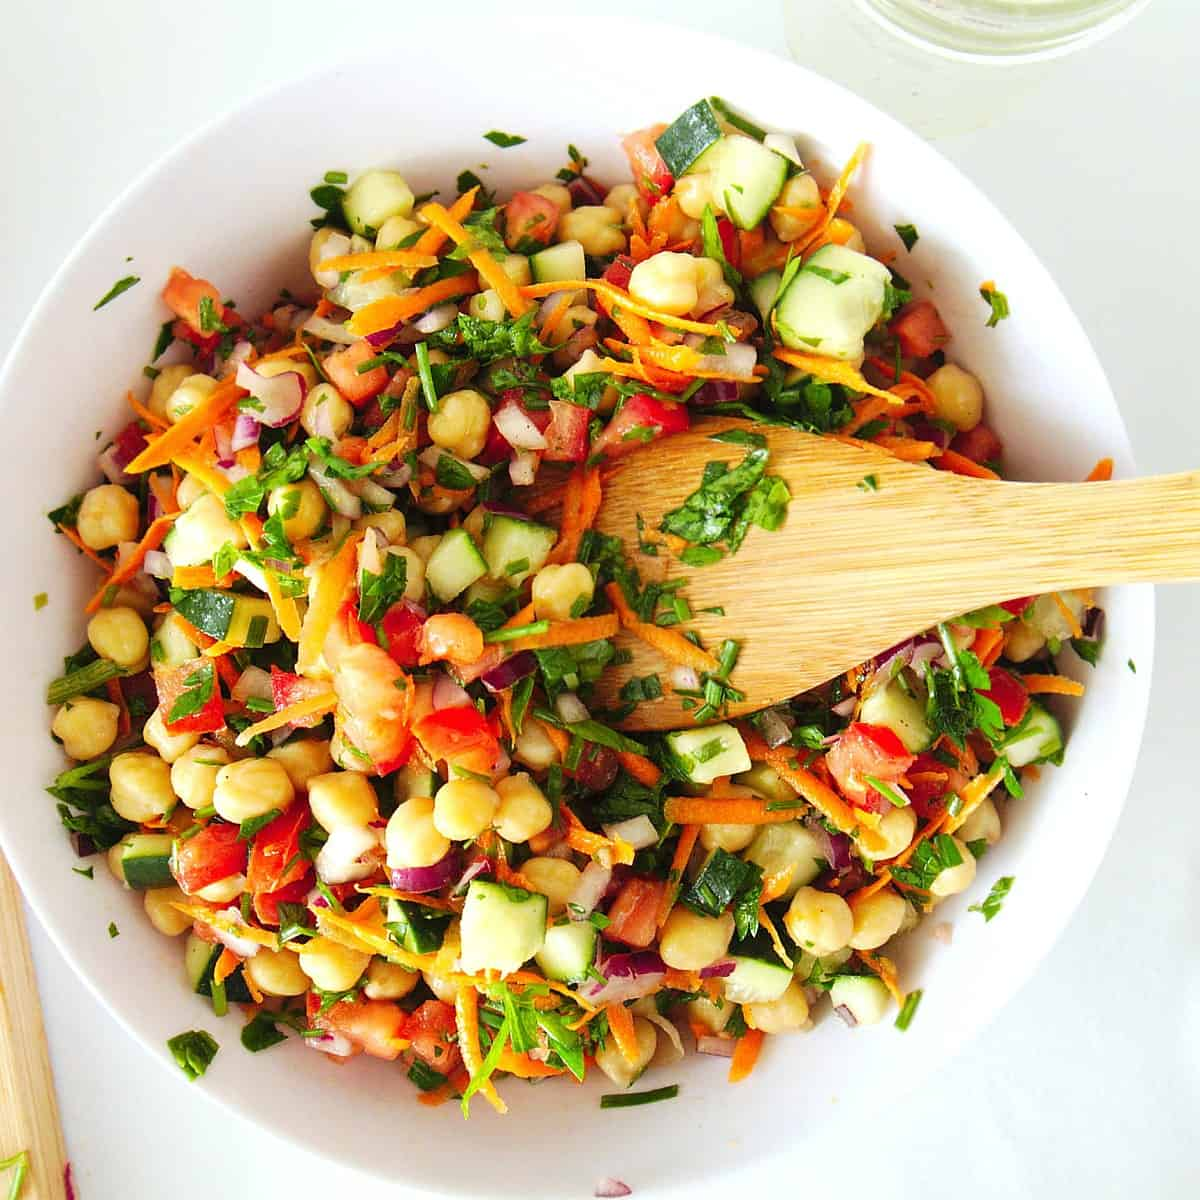 Overhead view of a mixed chickpea salad with a wooden spoon flipped over inside the white bowl.